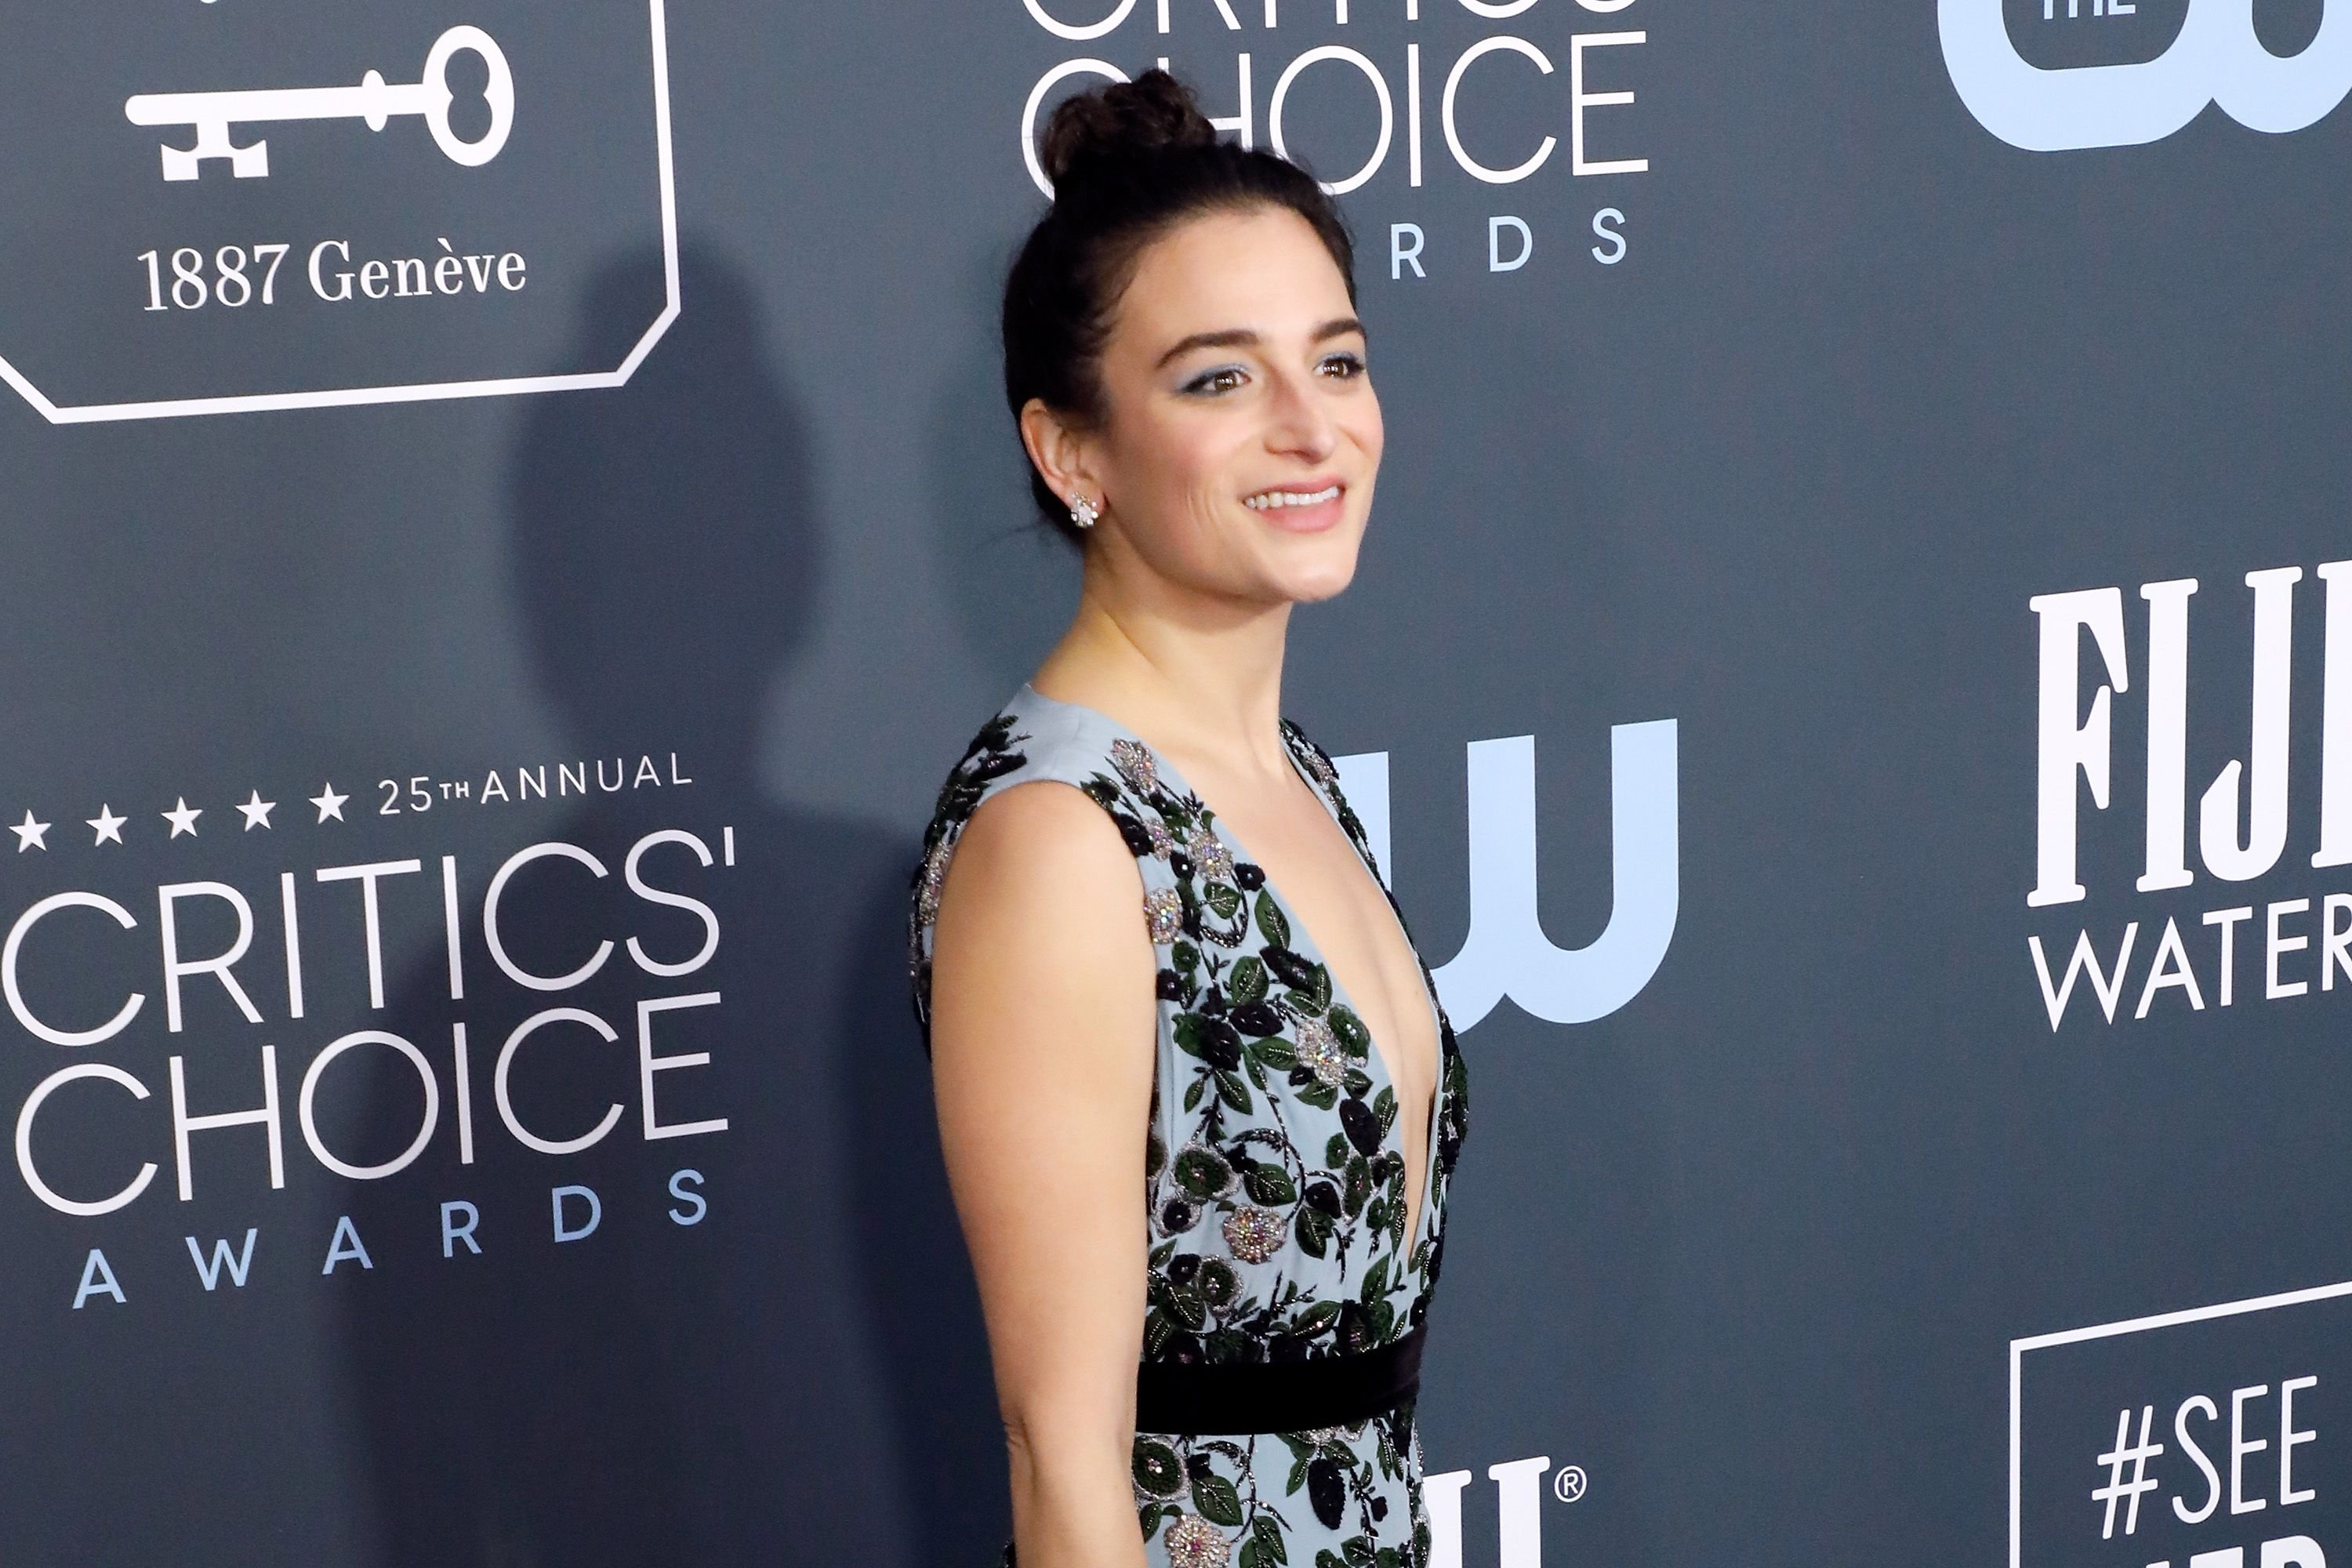 Jenny Slate at the 25th Annual Critics' Choice Awards in 2020 in Santa Monica, California   Source: Getty Images